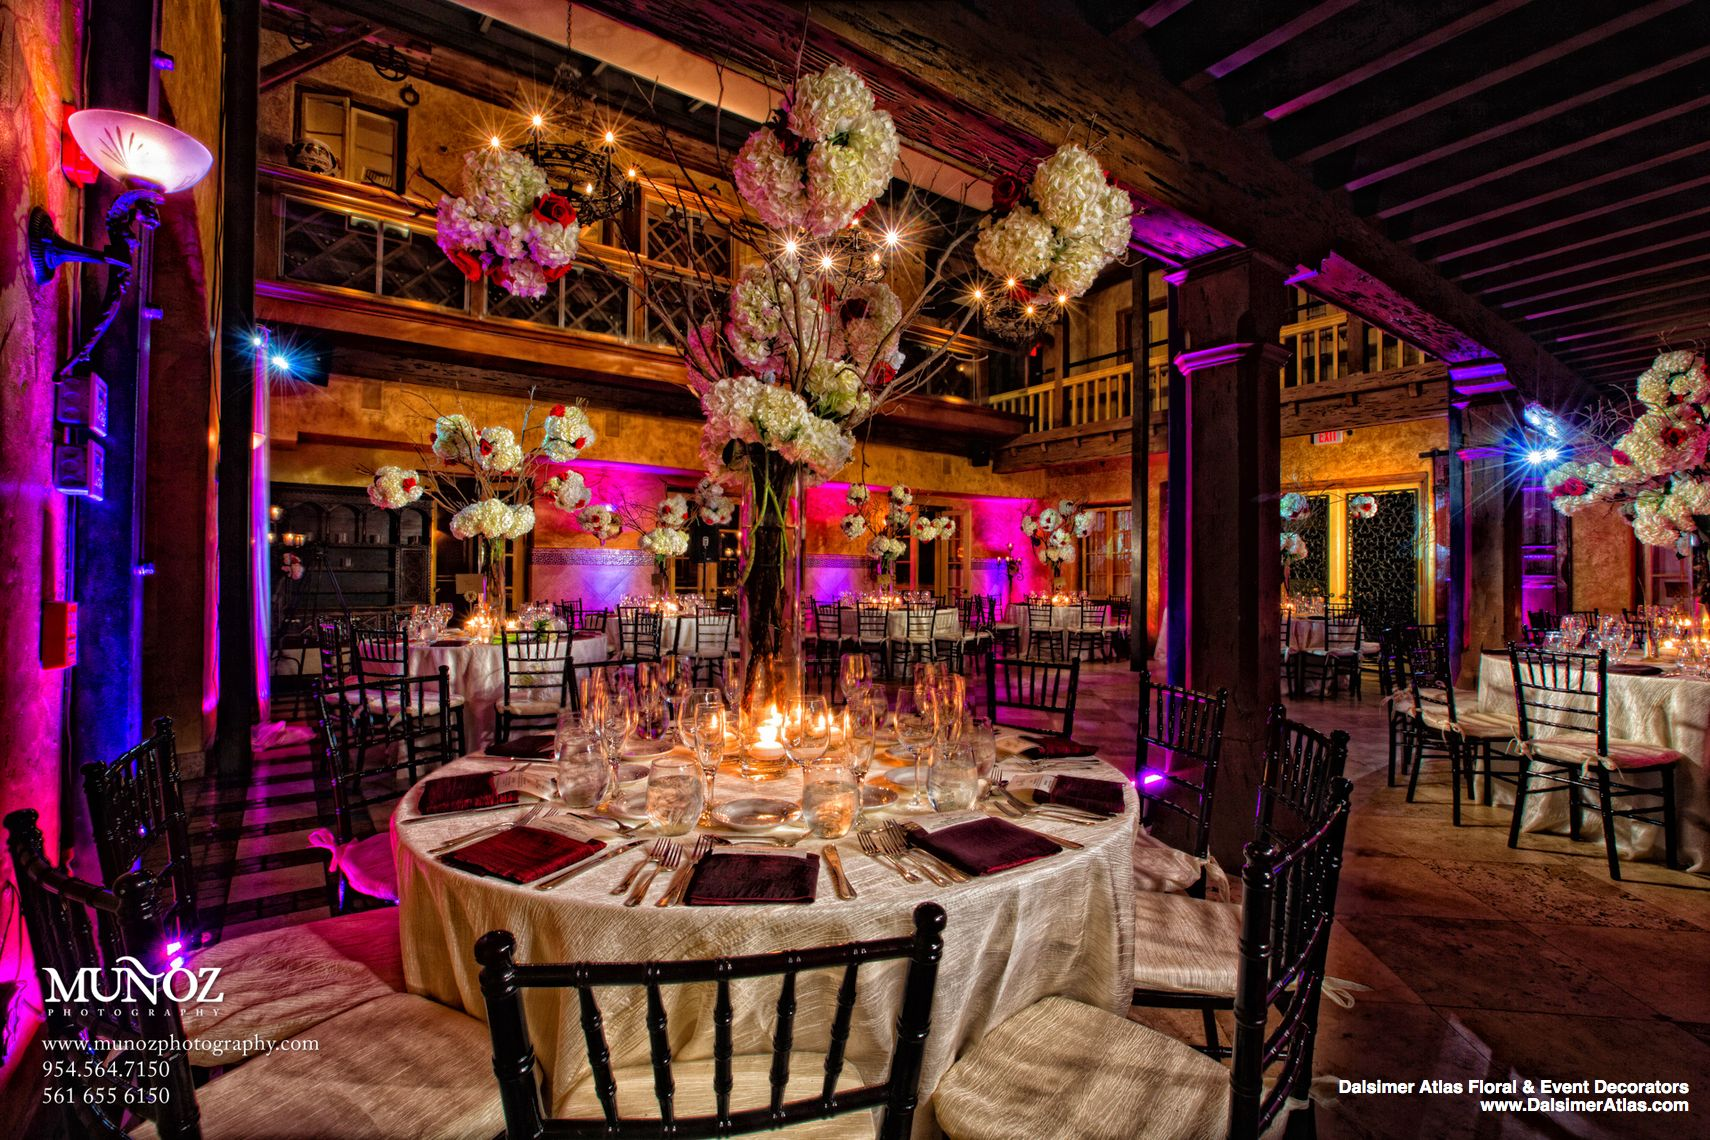 wedding-florist-flowers-decorations-the-addison-boca-raton-florida-dalsimer-atlas-16